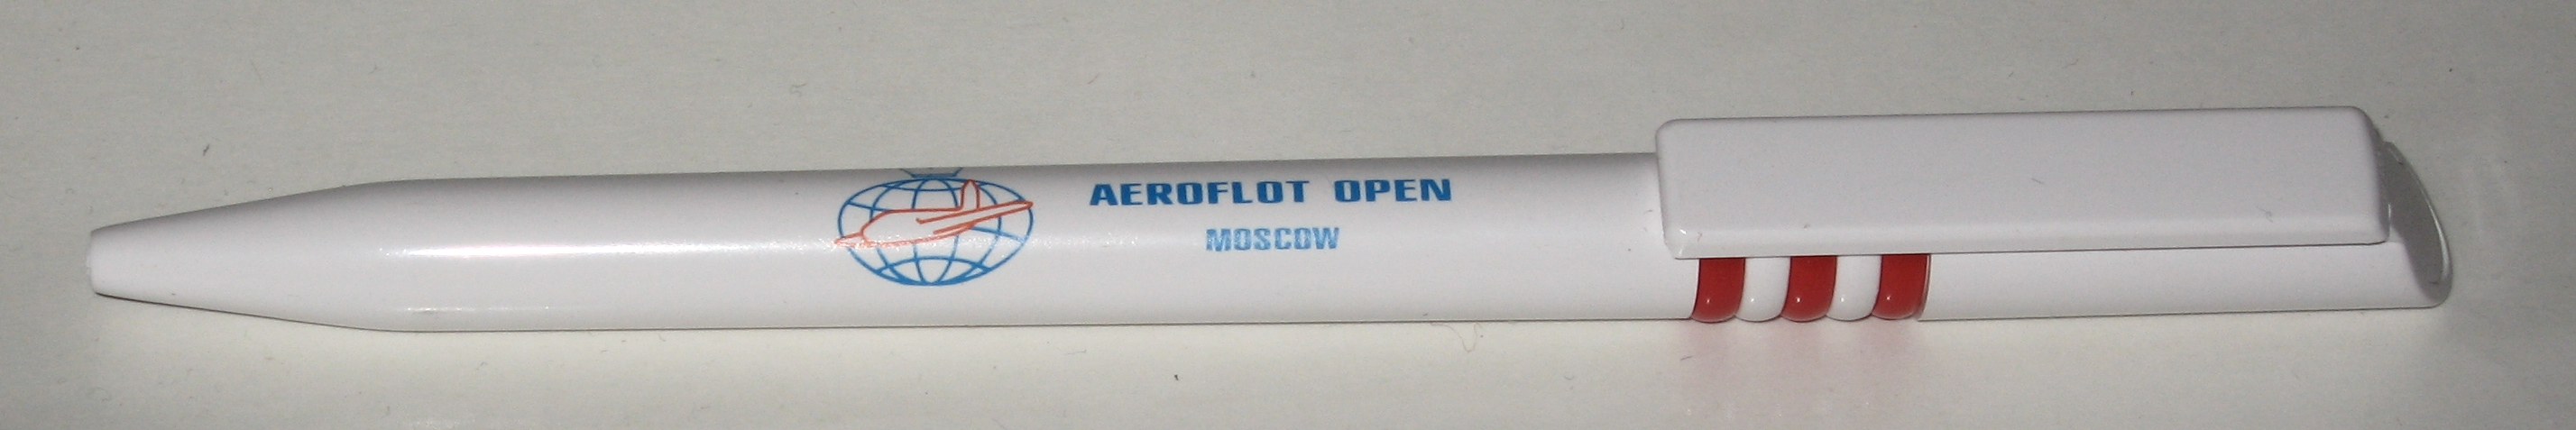 Aeroflot Open Handle